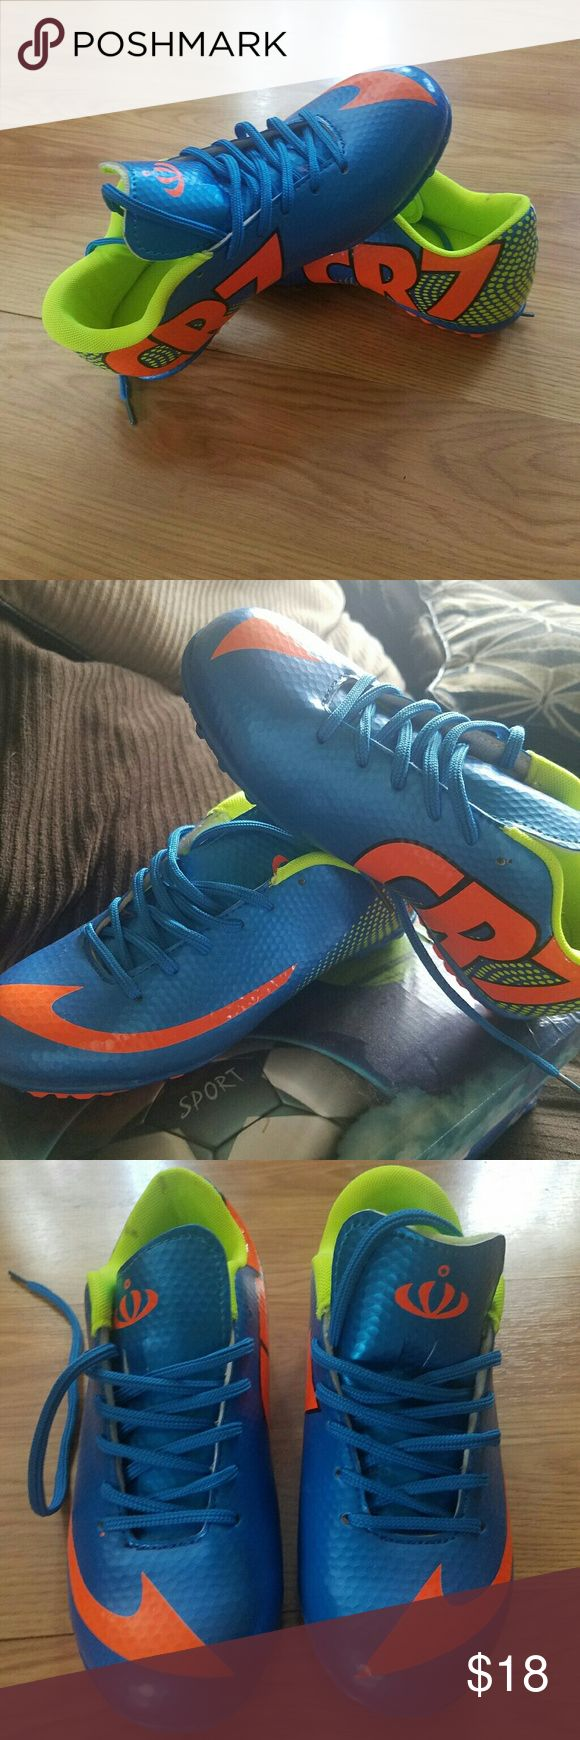 CR7  new indoor soccer shoes They are new,was ordered wrong size. Very cute for indoor season! cristiano ronaldo Shoes Sneakers